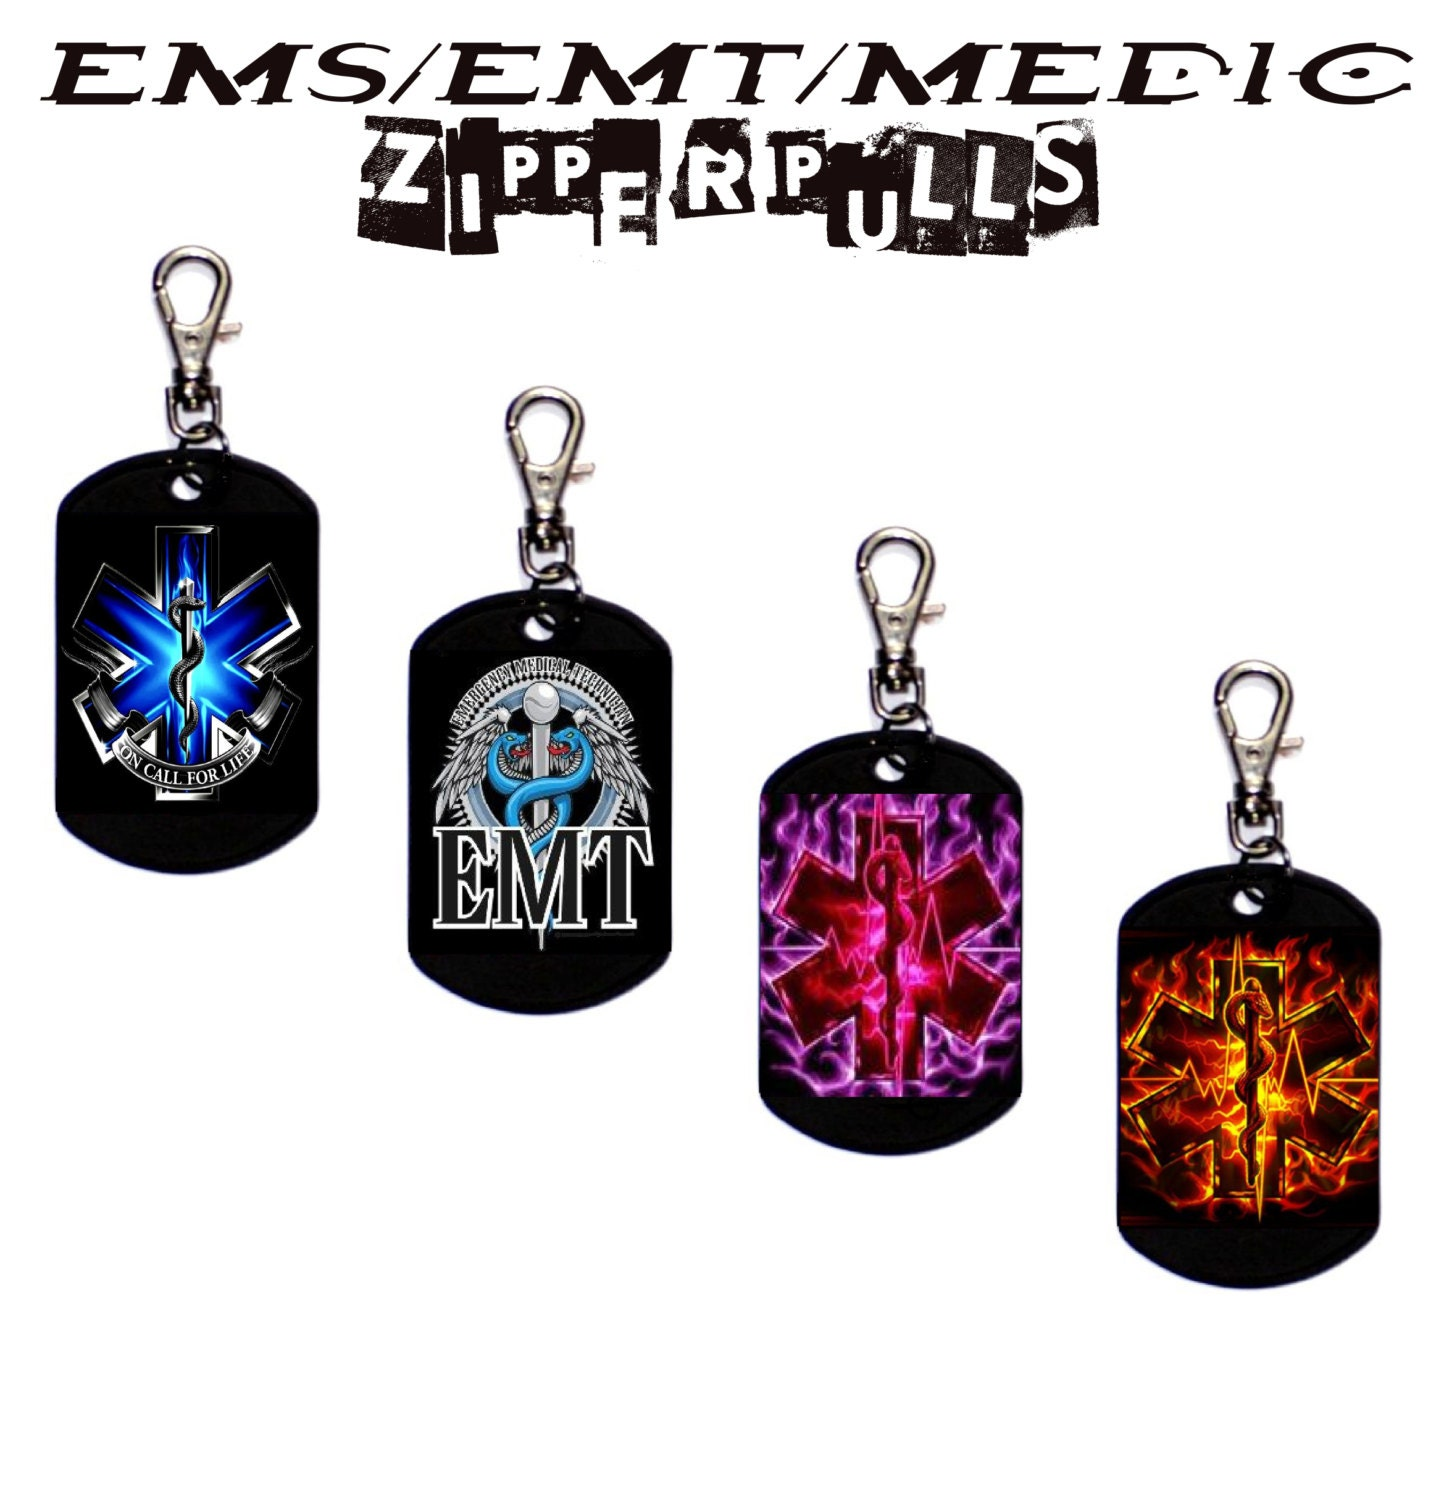 Ems Emt Medic Zipper Pull Dog Tag W Resin Finish Fire